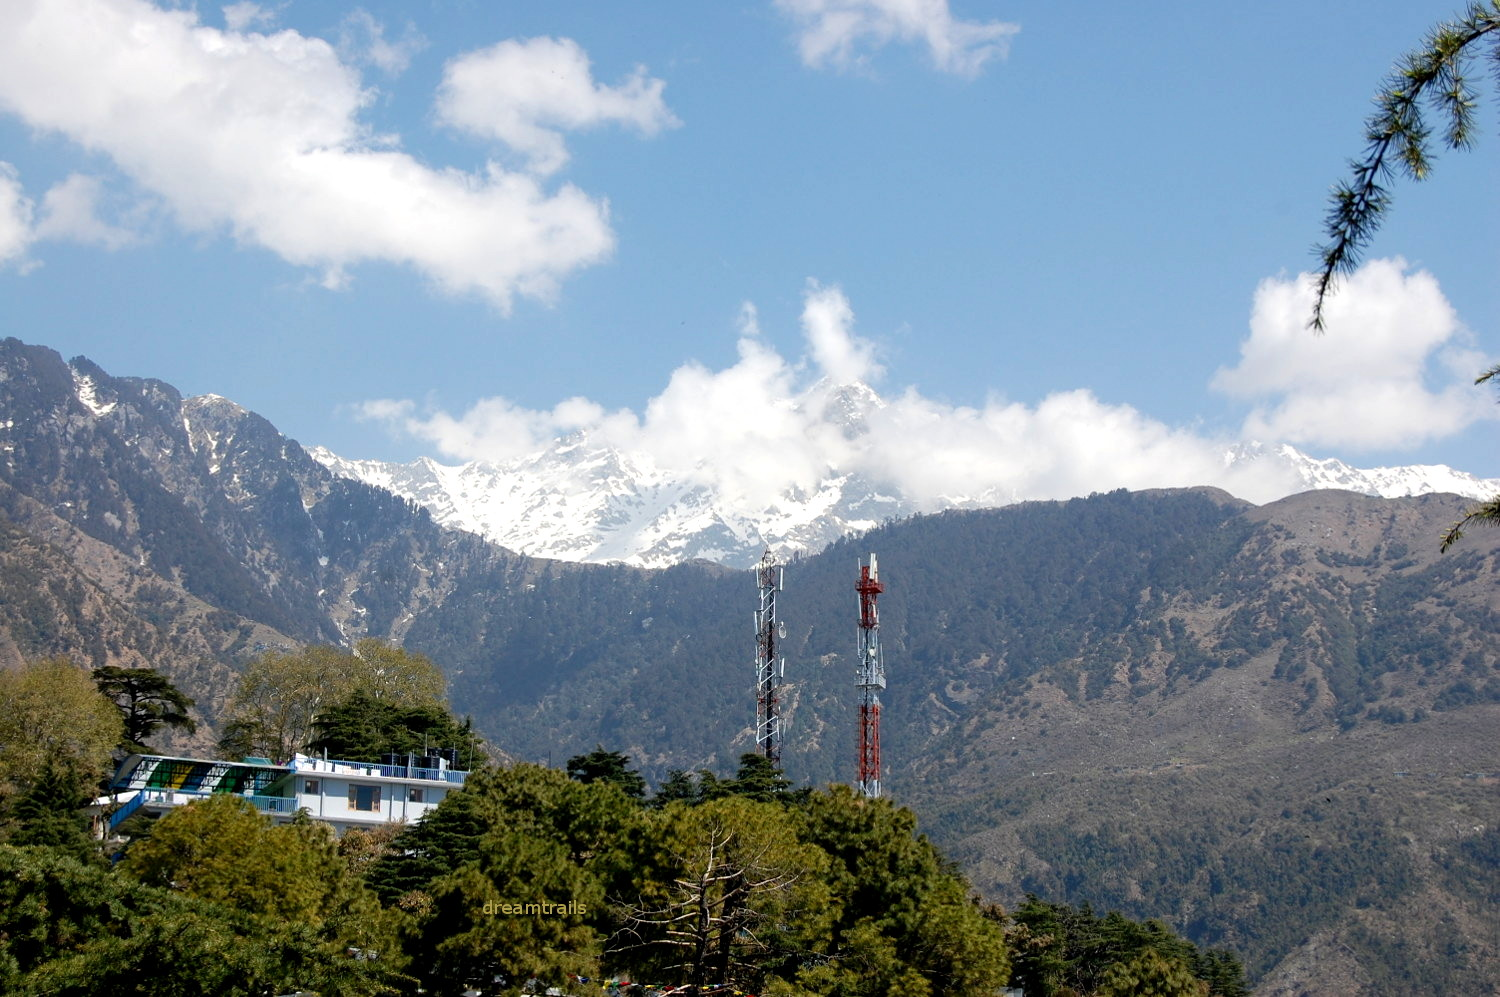 Awesome views from McLeod Ganj, Himachal Pradesh